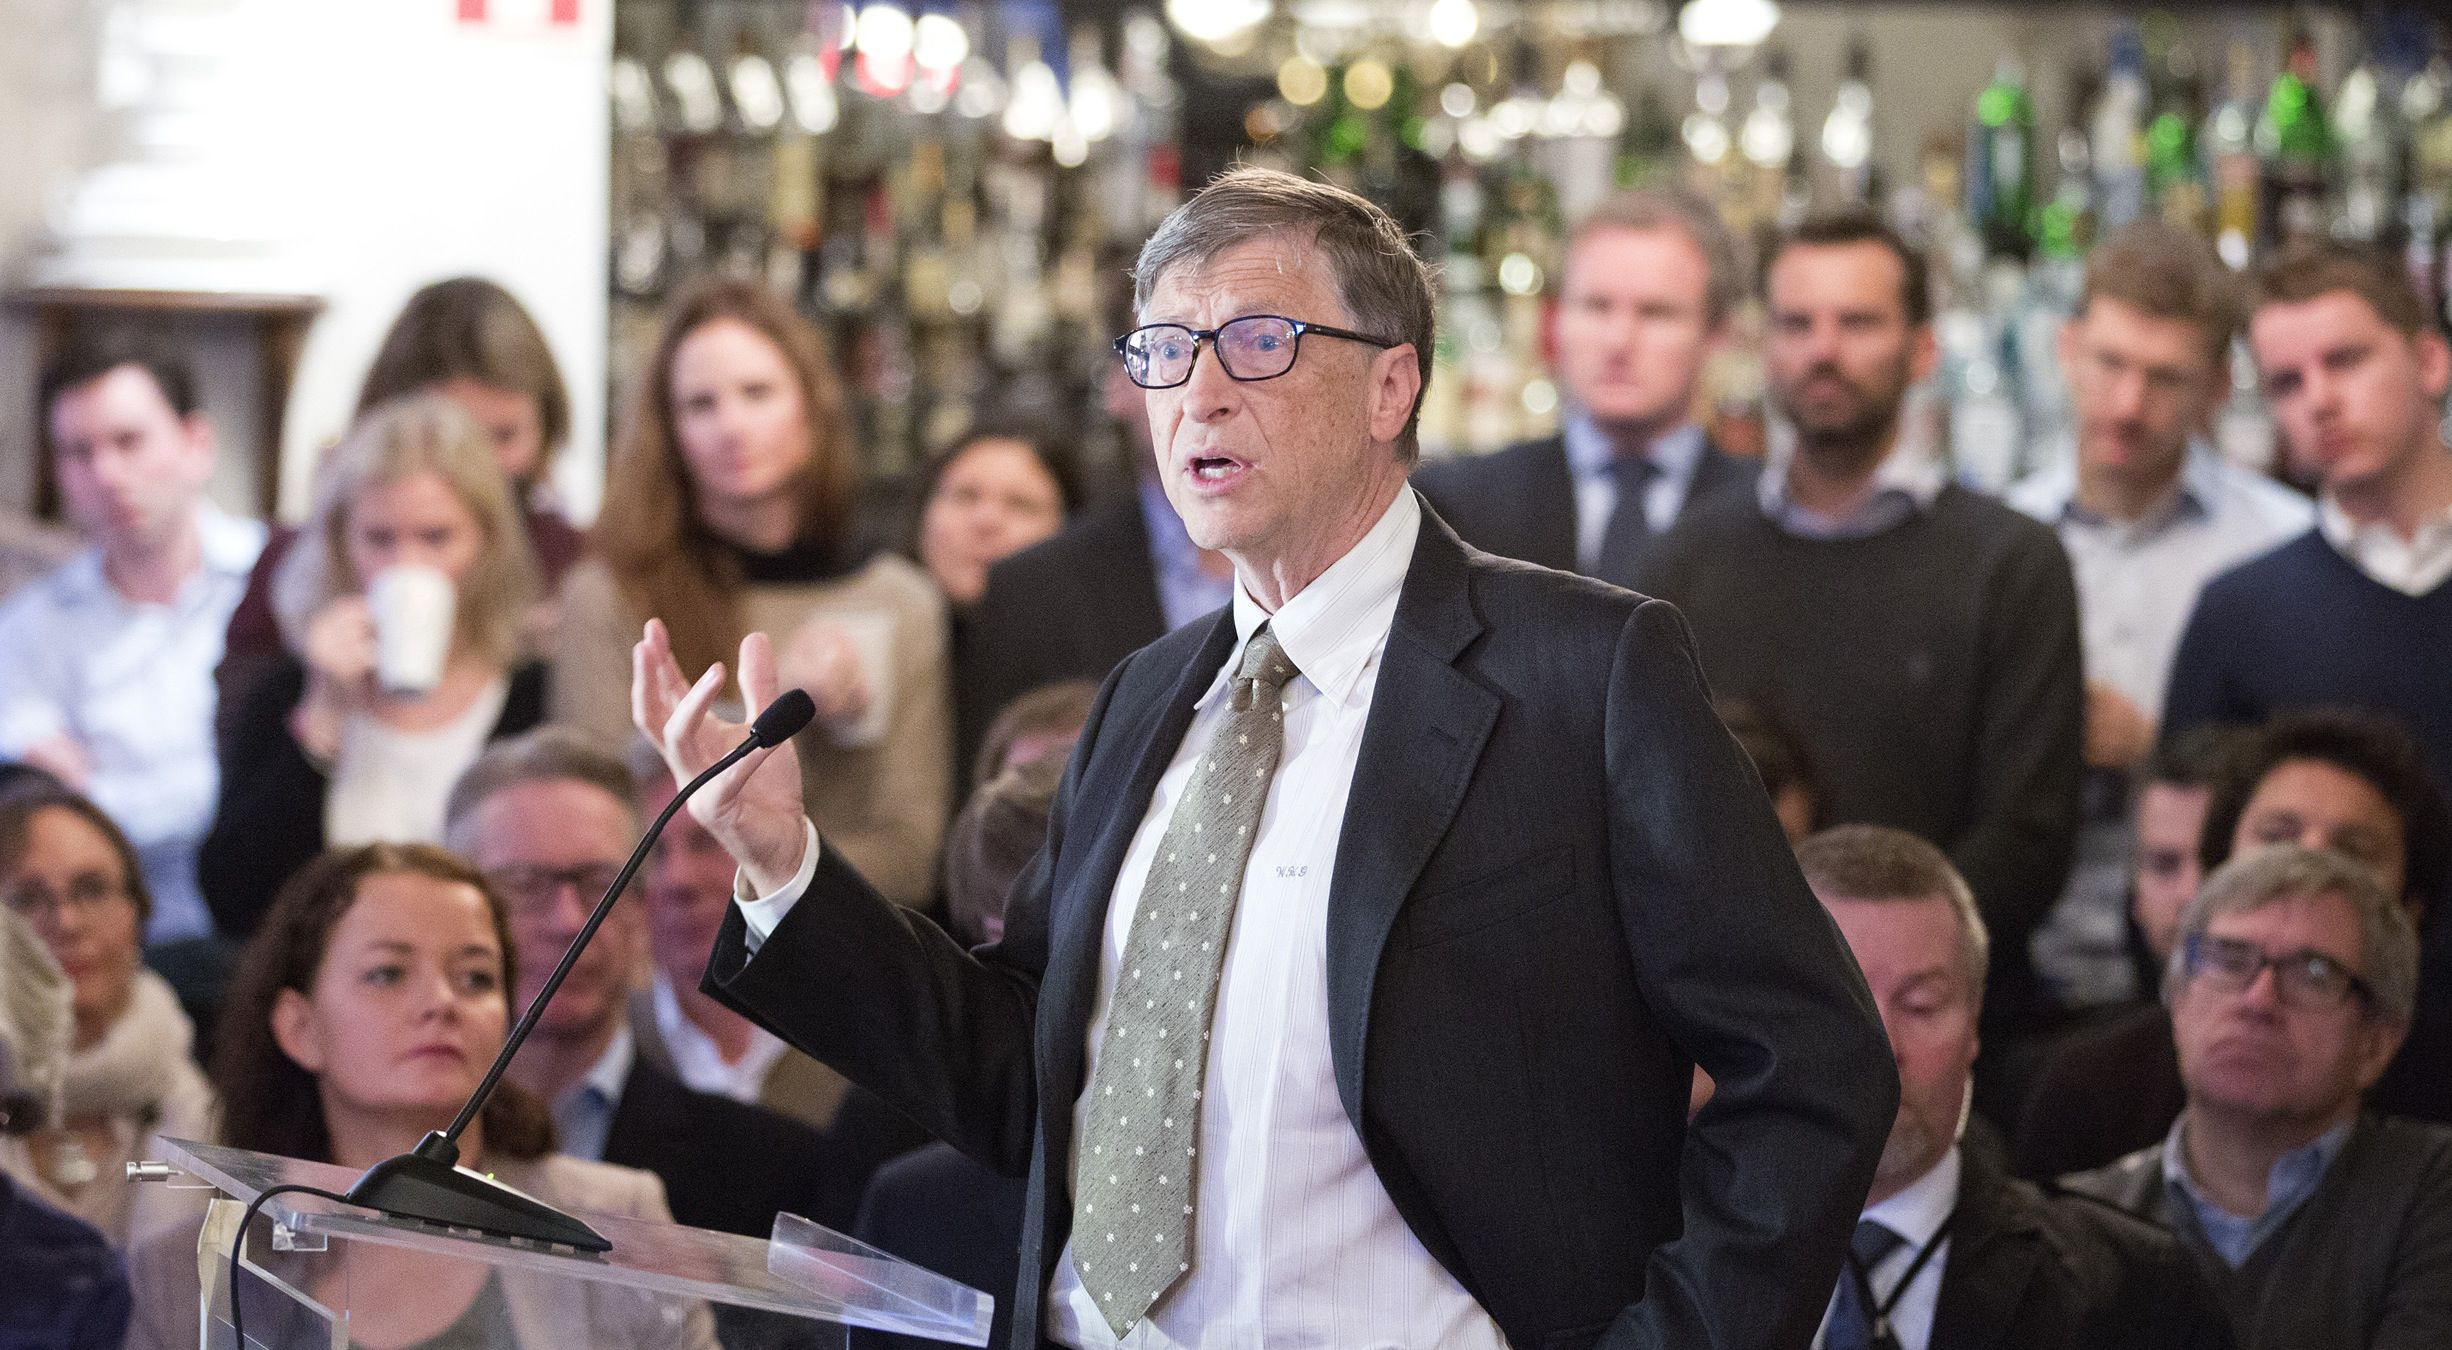 Microsoft co-founder and philanthropist Bill Gates speaks at a breakfast meeting hosted by Civita, a liberal think tank, in Oslo November 15, 2013. Gates called on Norway's $800 billion oil fund, one of the biggest investors in the world, to spend more in the poorest countries where little private money reaches. REUTERS/Gorm Kallesrad/NTB Scanpix (NORWAY - Tags: BUSINESS) ATTENTION EDITORS - THIS IMAGE WAS PROVIDED BY A THIRD PARTY. THIS PICTURE IS DISTRIBUTED EXACTLY AS RECEIVED BY REUTERS, AS A SERVICE TO CLIENTS. NORWAY OUT. NO COMMERCIAL OR EDITORIAL SALES IN NORWAY. NO COMMERCIAL SALES - RTX15ENJ